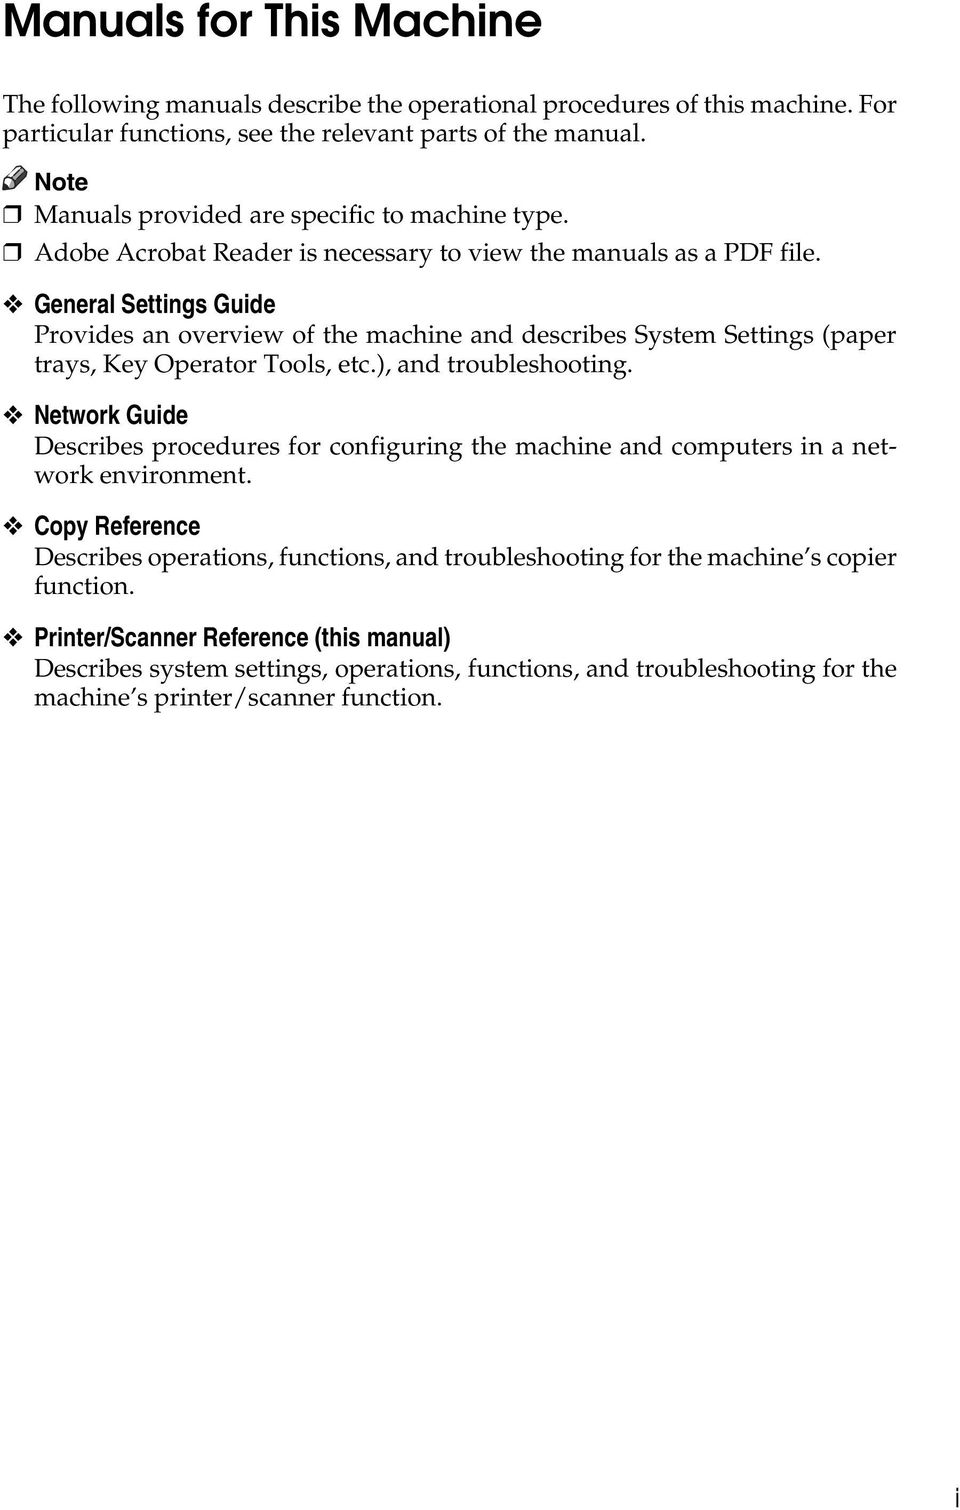 General Settings Guide Provides an overview of the machine and describes System Settings (paper trays, Key Operator Tools, etc.), and troubleshooting.